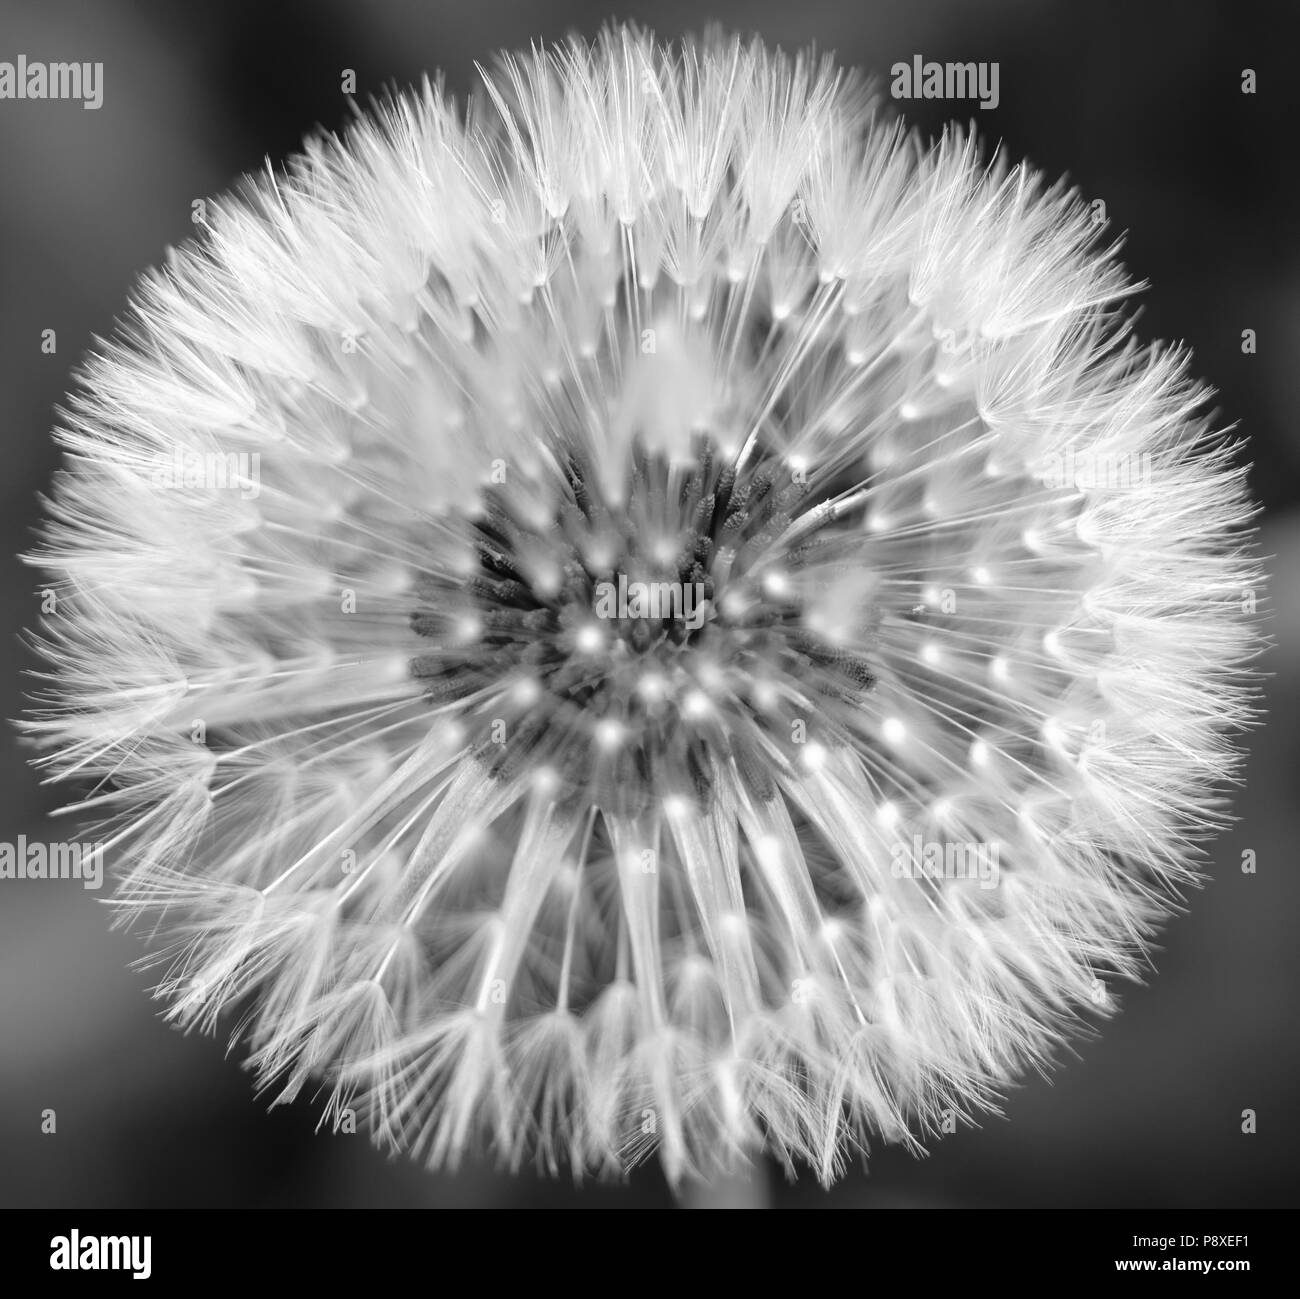 High contrast black white photo of a dandelion seed head stock